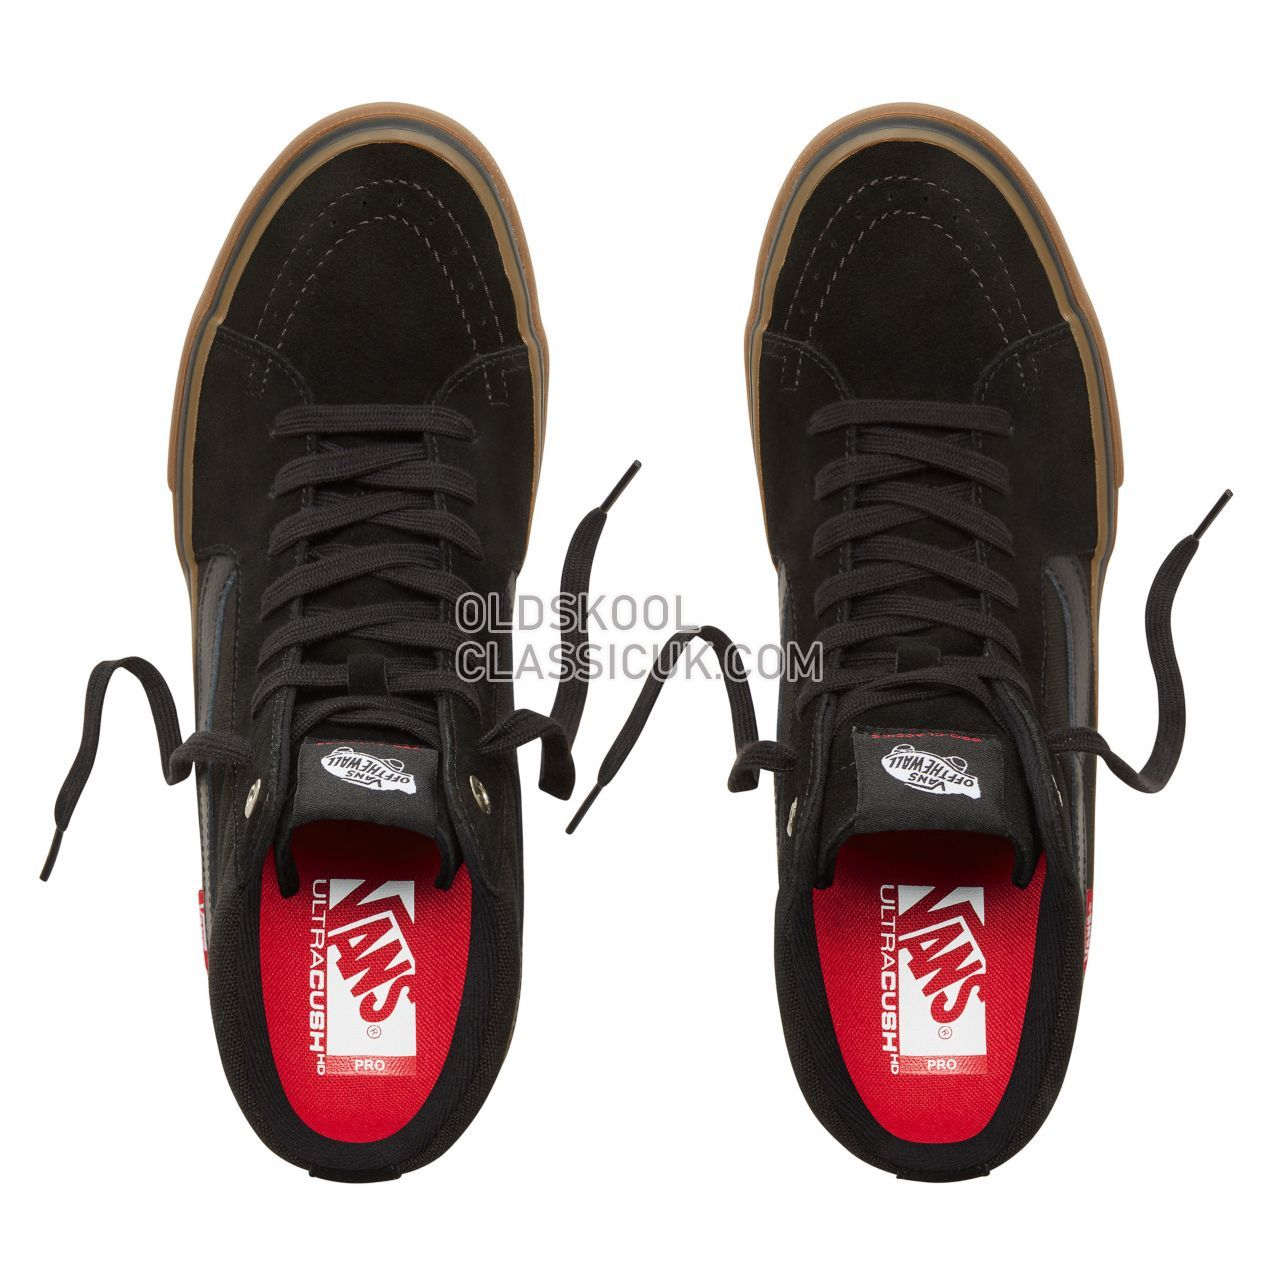 Vans Sk8-Hi Pro Sneakers Mens Black-Gum VN000VHGB9M Shoes